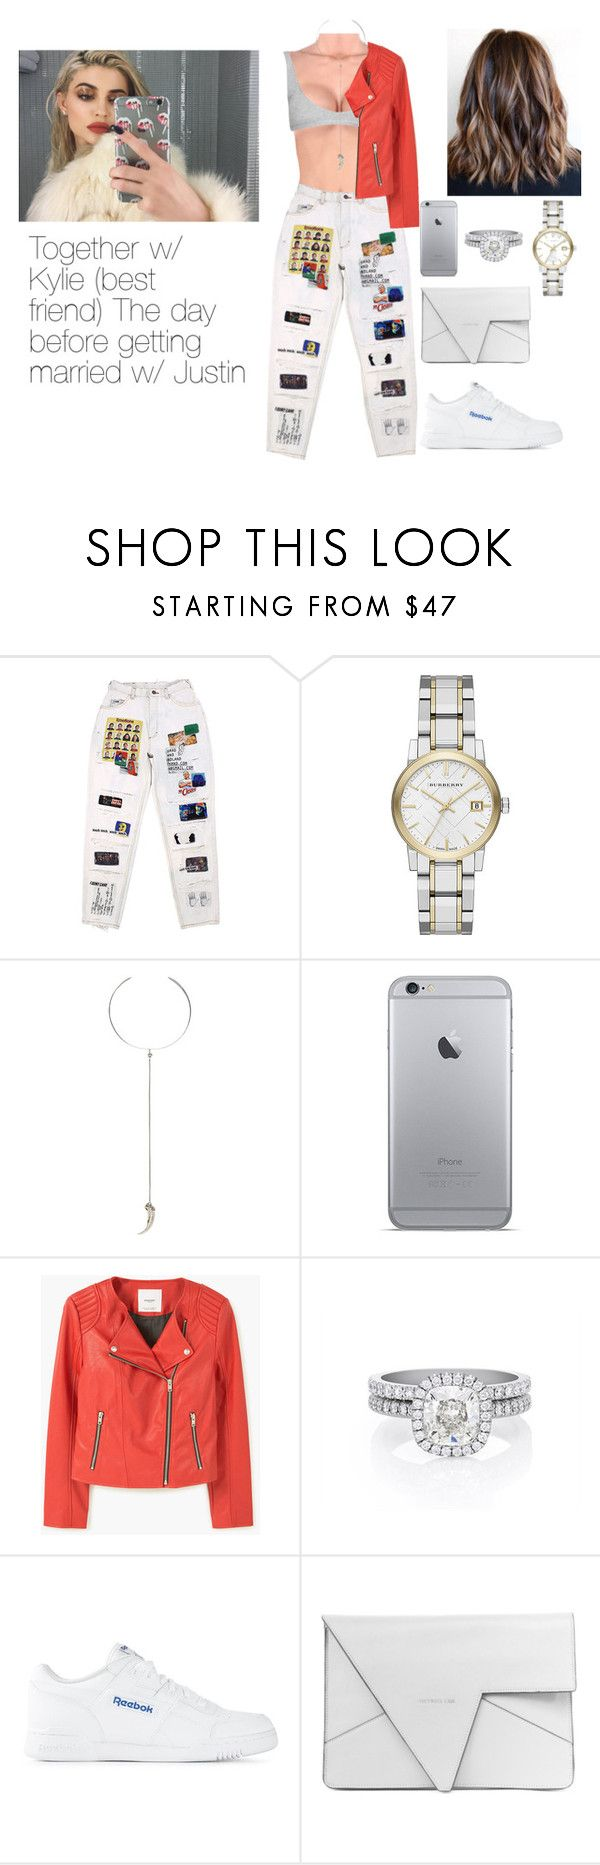 """Imagine Kylie Jenner"" by cecilie2010-sp ❤ liked on Polyvore featuring Burberry, Vanessa Mooney, MANGO, De Beers and Reebok"